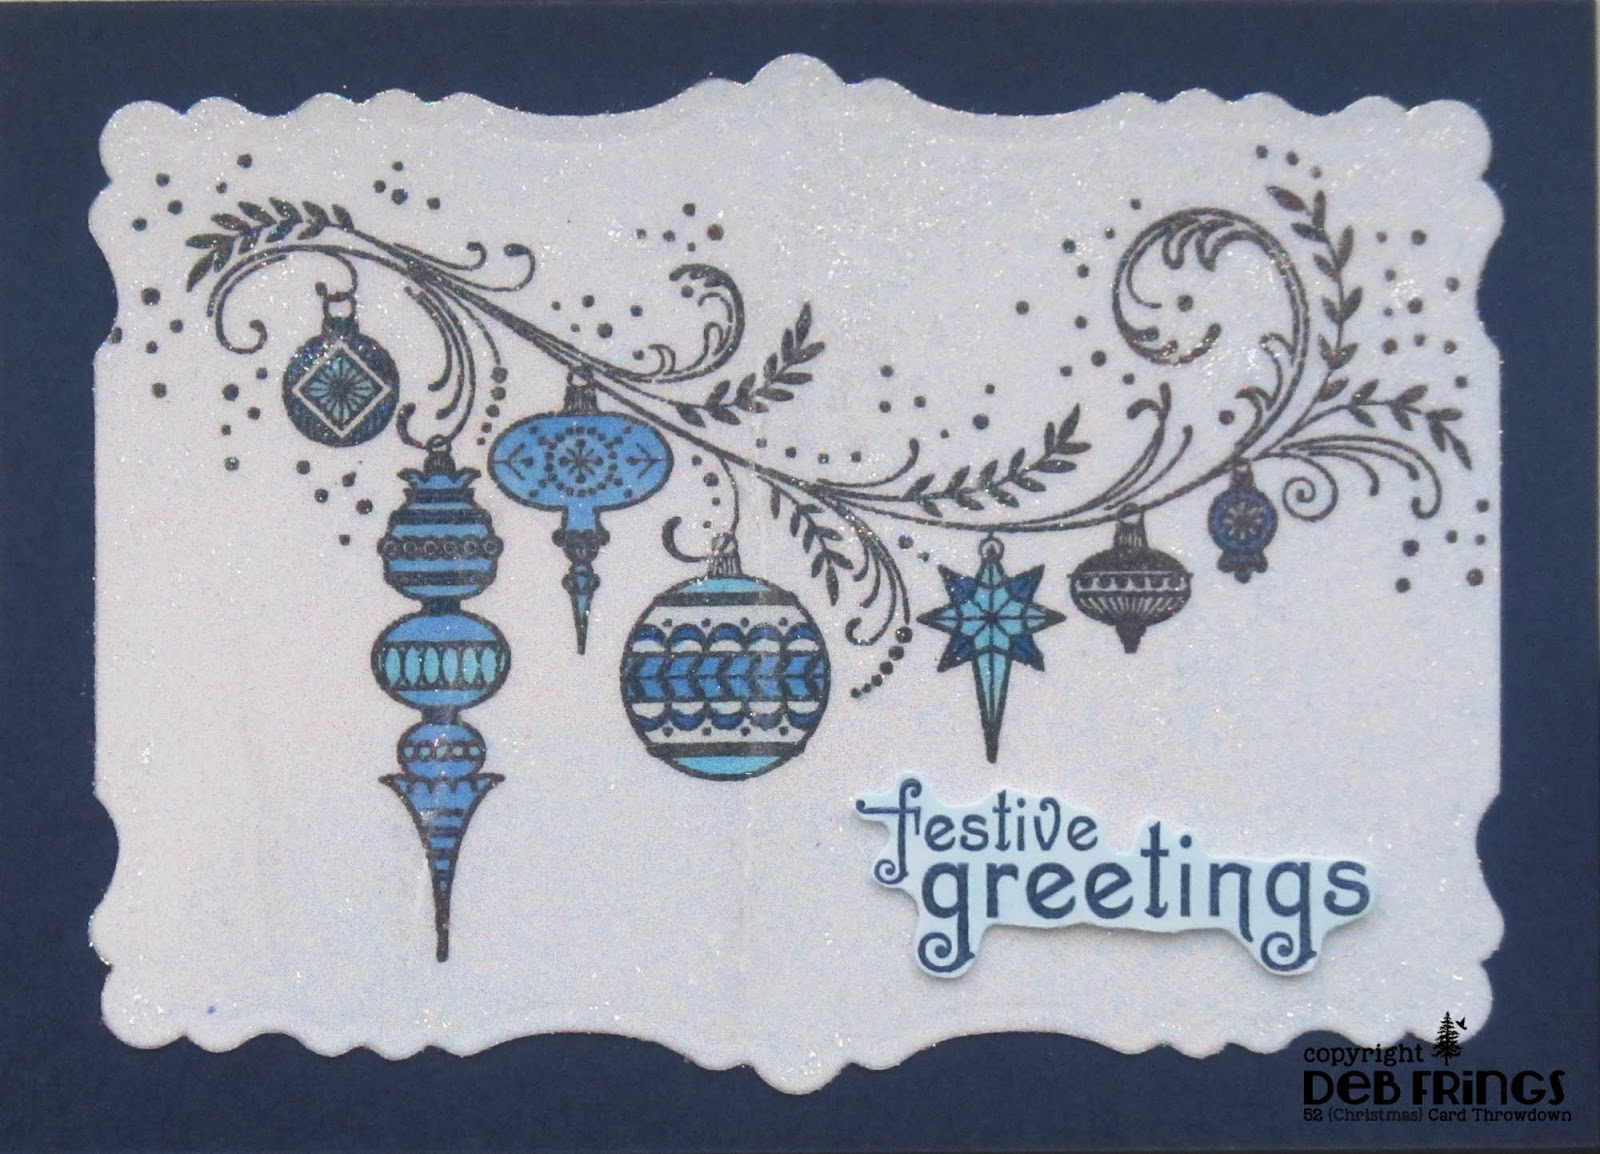 Festive Greetings - photo by Deborah Frings - Deborah's Gems